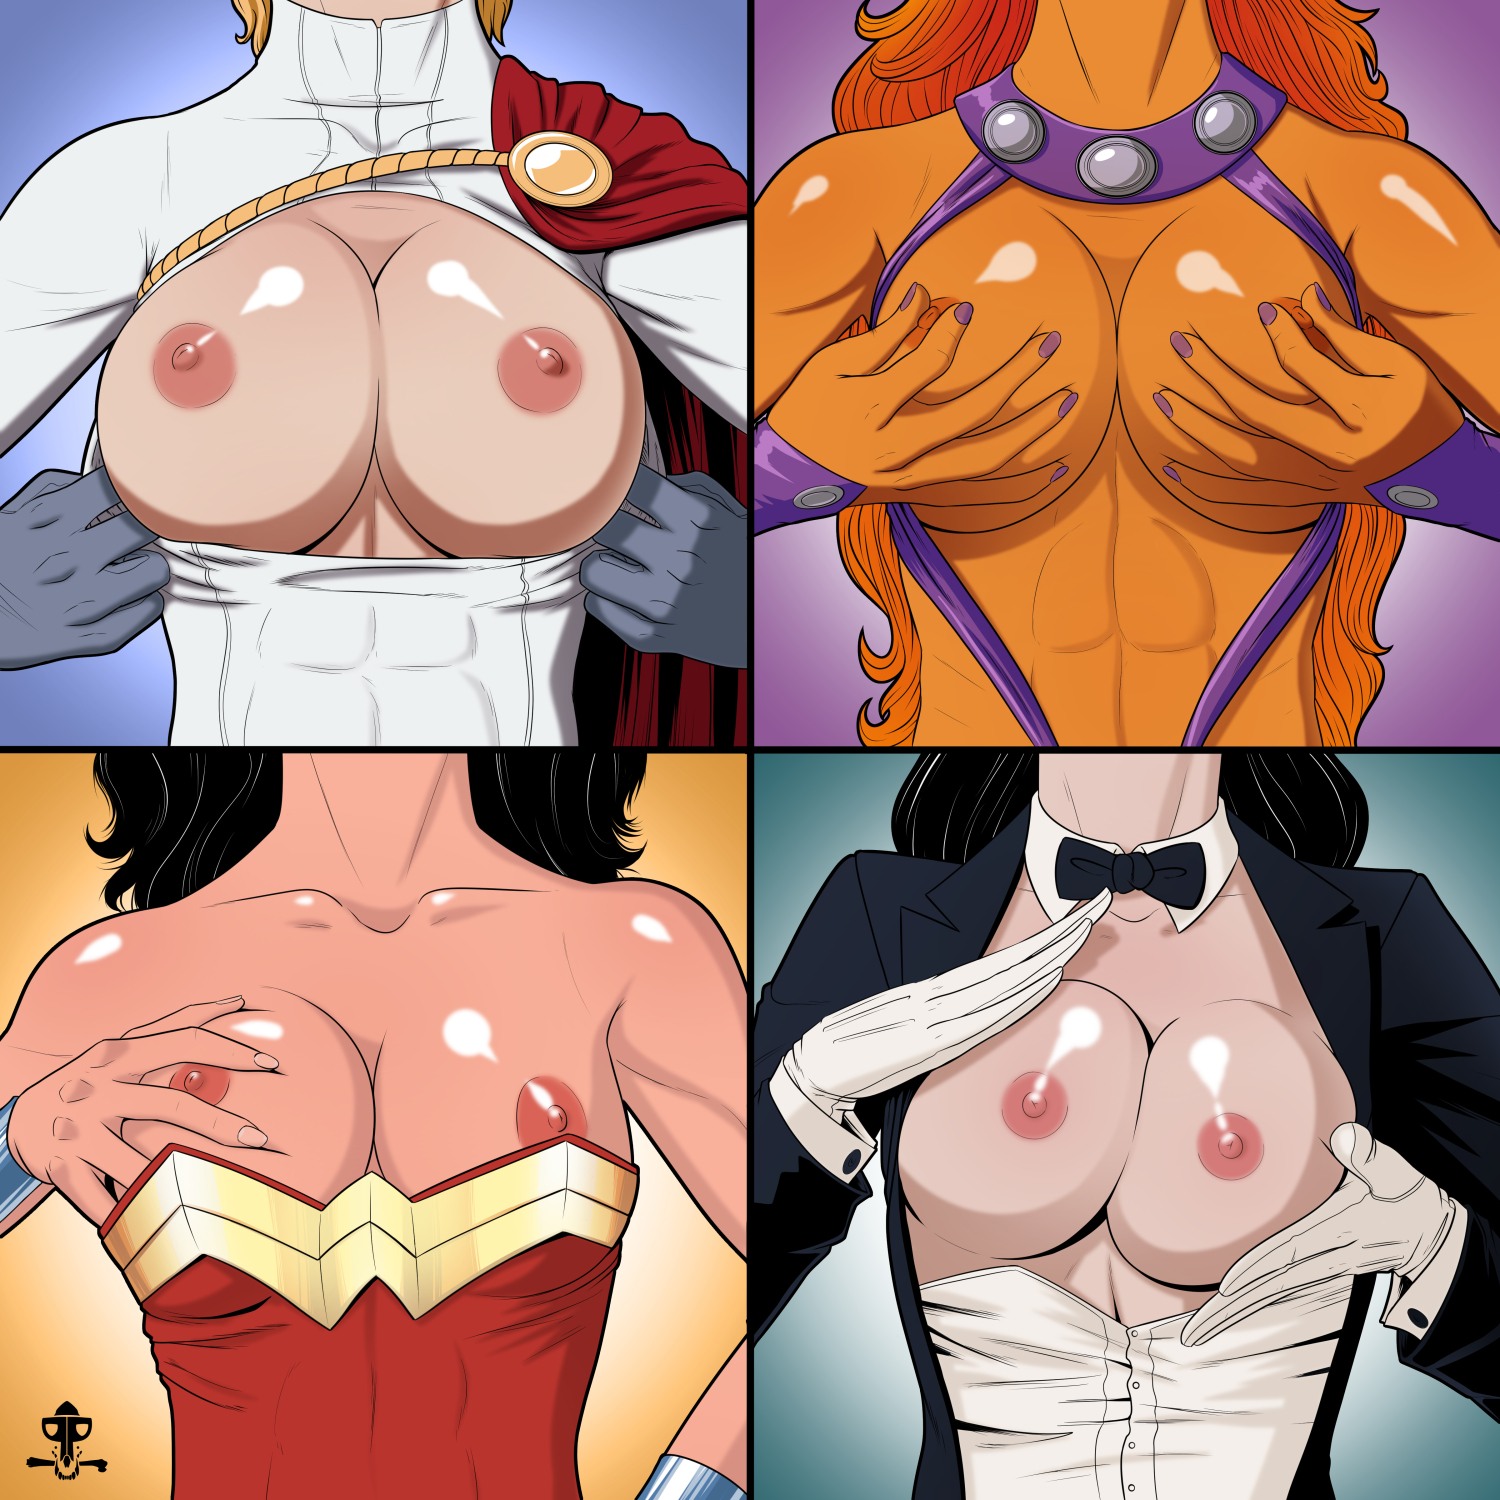 Why did the producers of wonder woman make her have such small boobs